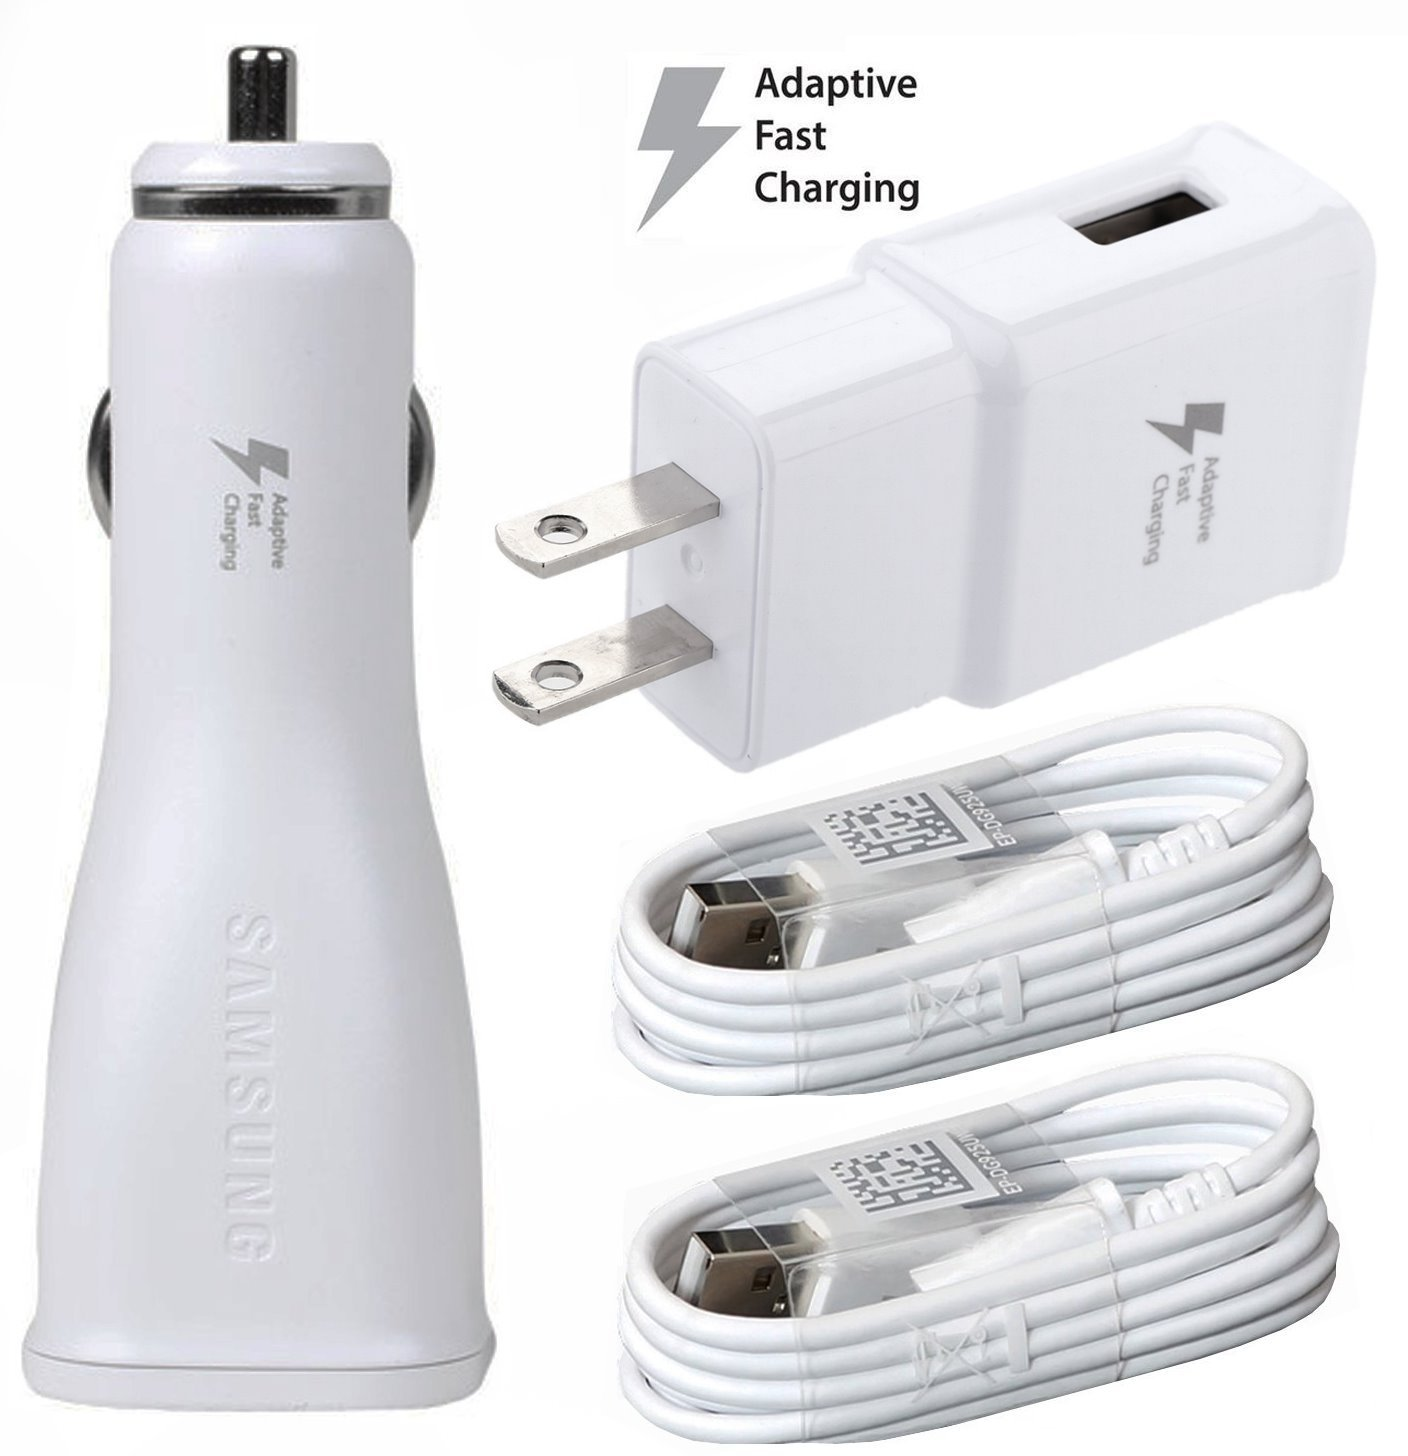 Verizon Samsung Galaxy S8 Adaptive Fast Charger Type C Cable Kit! [1 Car + 1 Home Charger + 2x Type C USB Cable] AFC uses dual voltages for up to 50% faster charging! - Bulk Packaging 4326609798